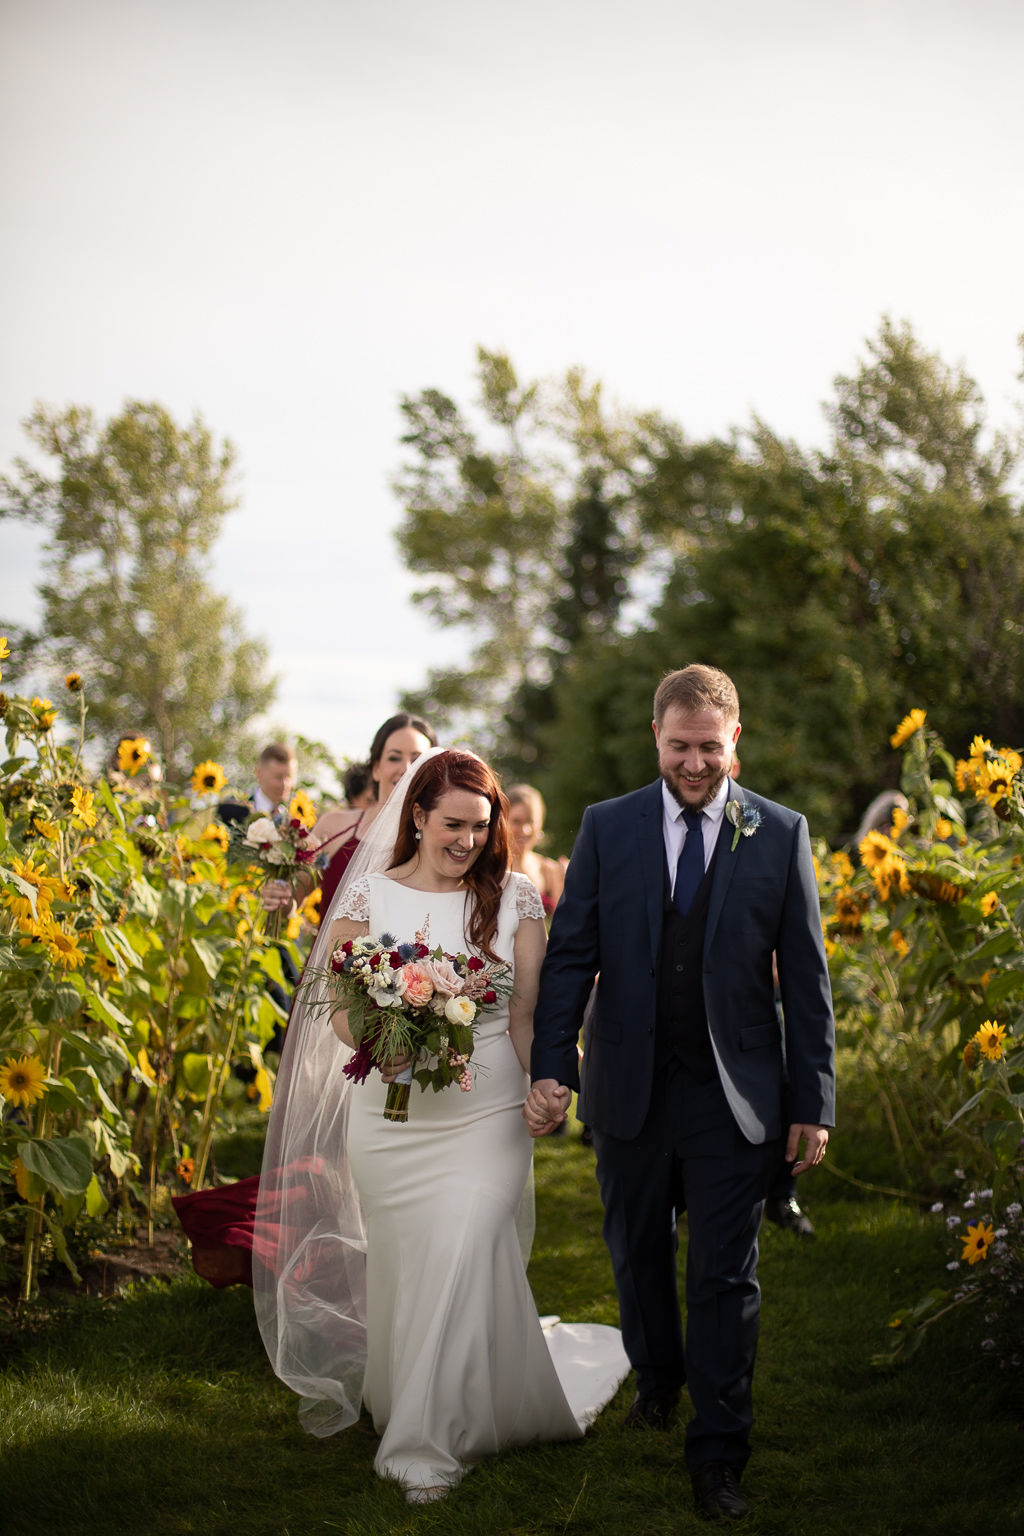 bride and groom walk down a grassy path surrounded by yellow sunflowers! www.thegathered.ca